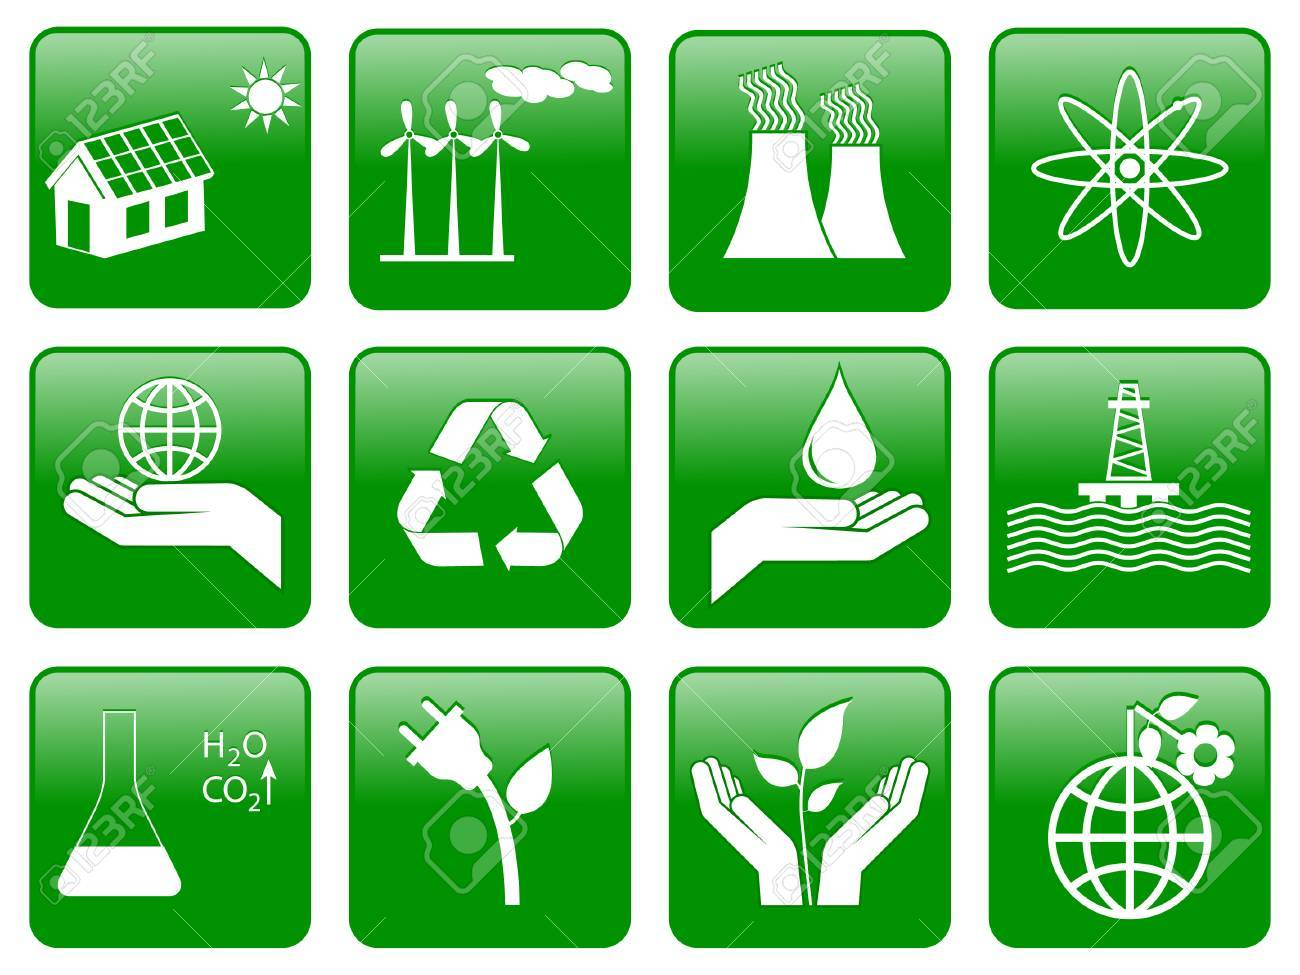 Earth conservation and ecology icon set Stock Vector - 8155625